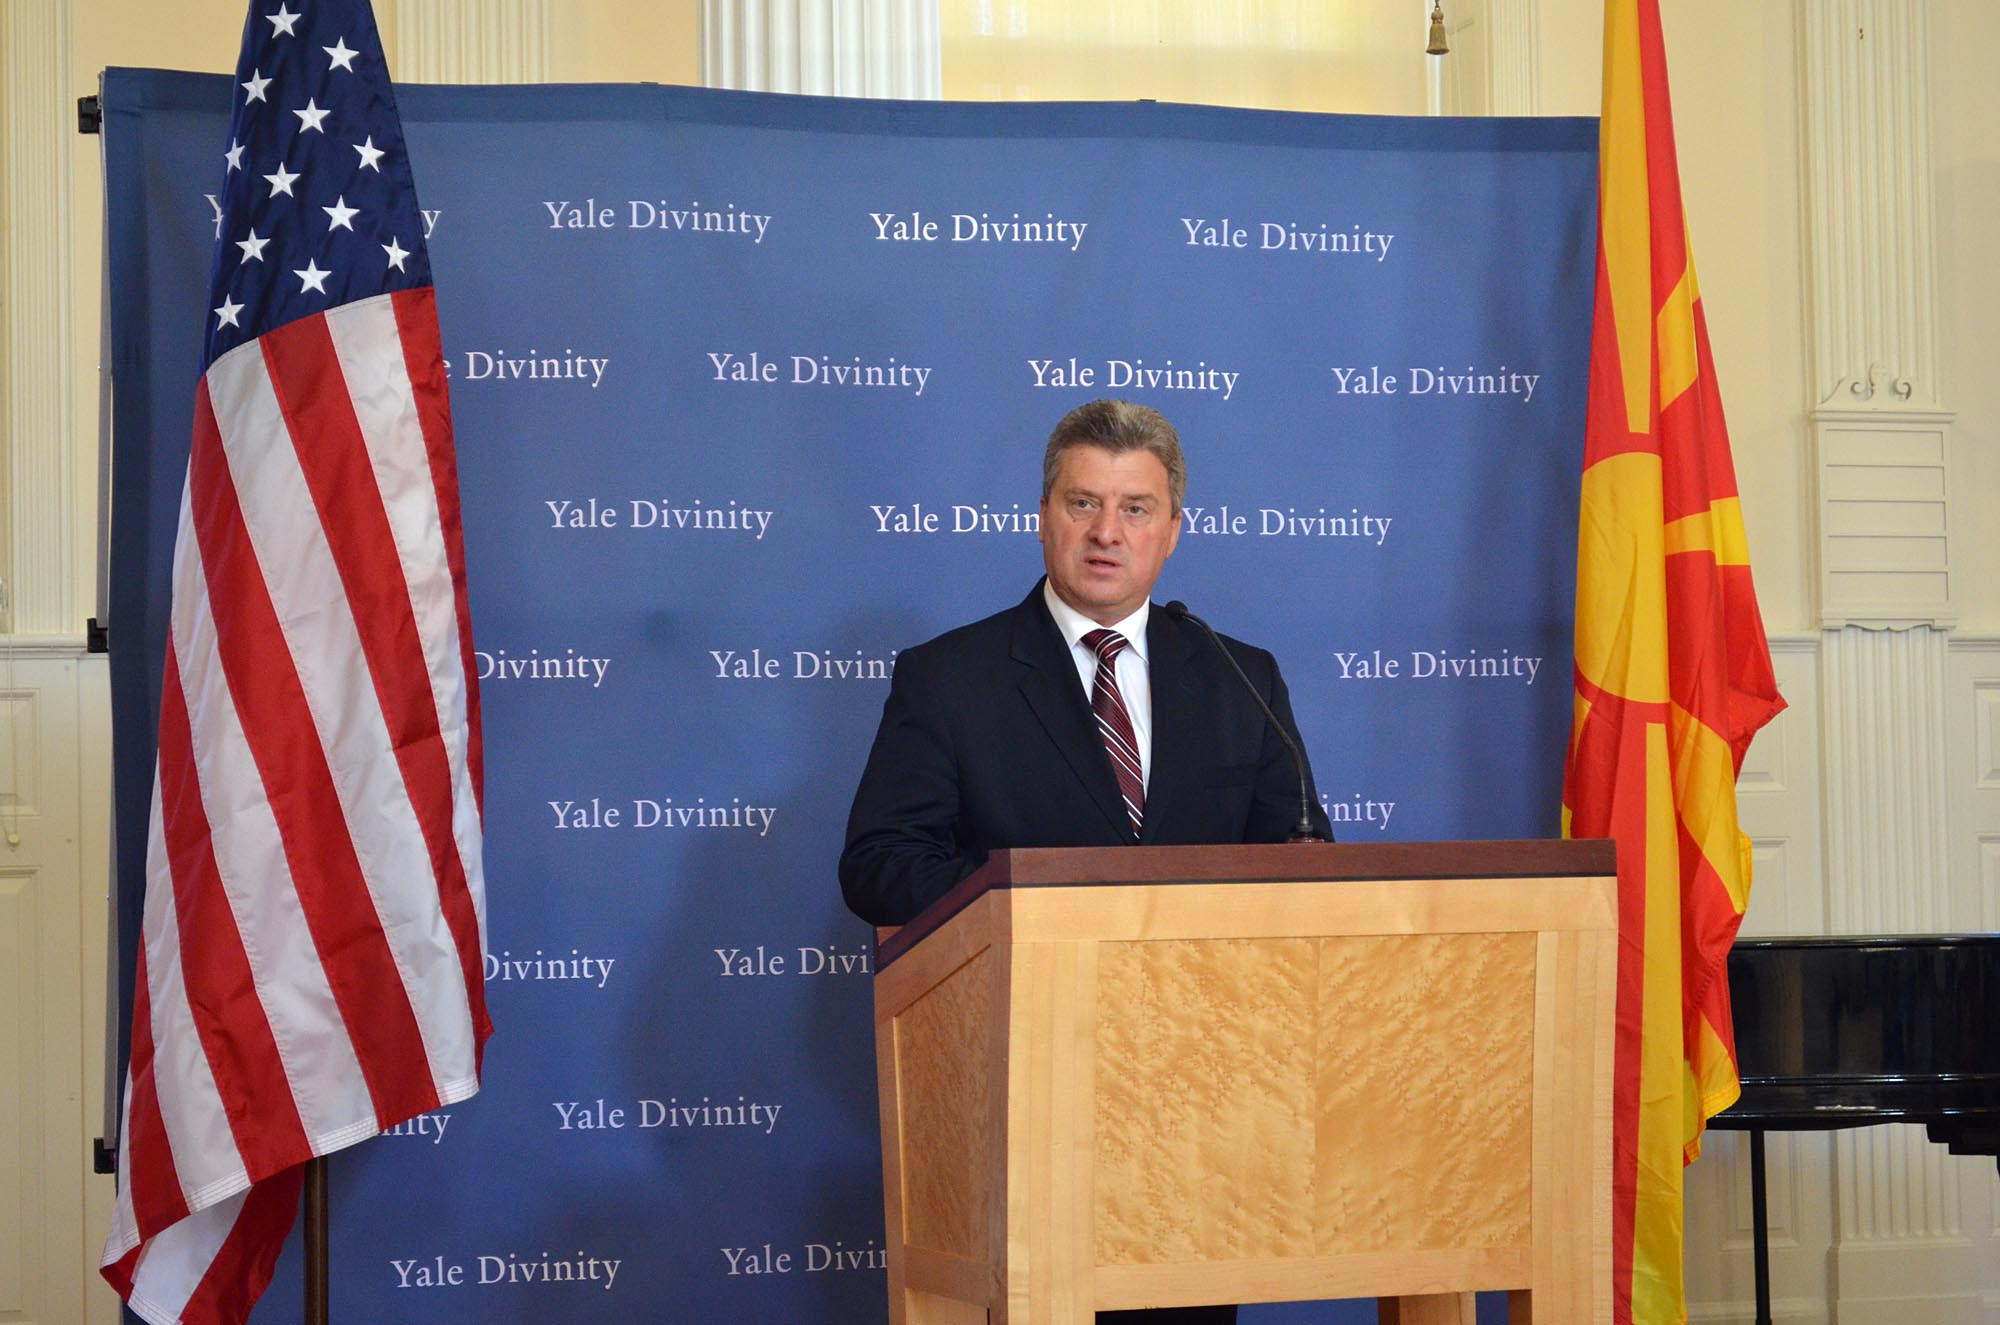 Greece has political elites from the Cold War, says Ivanov